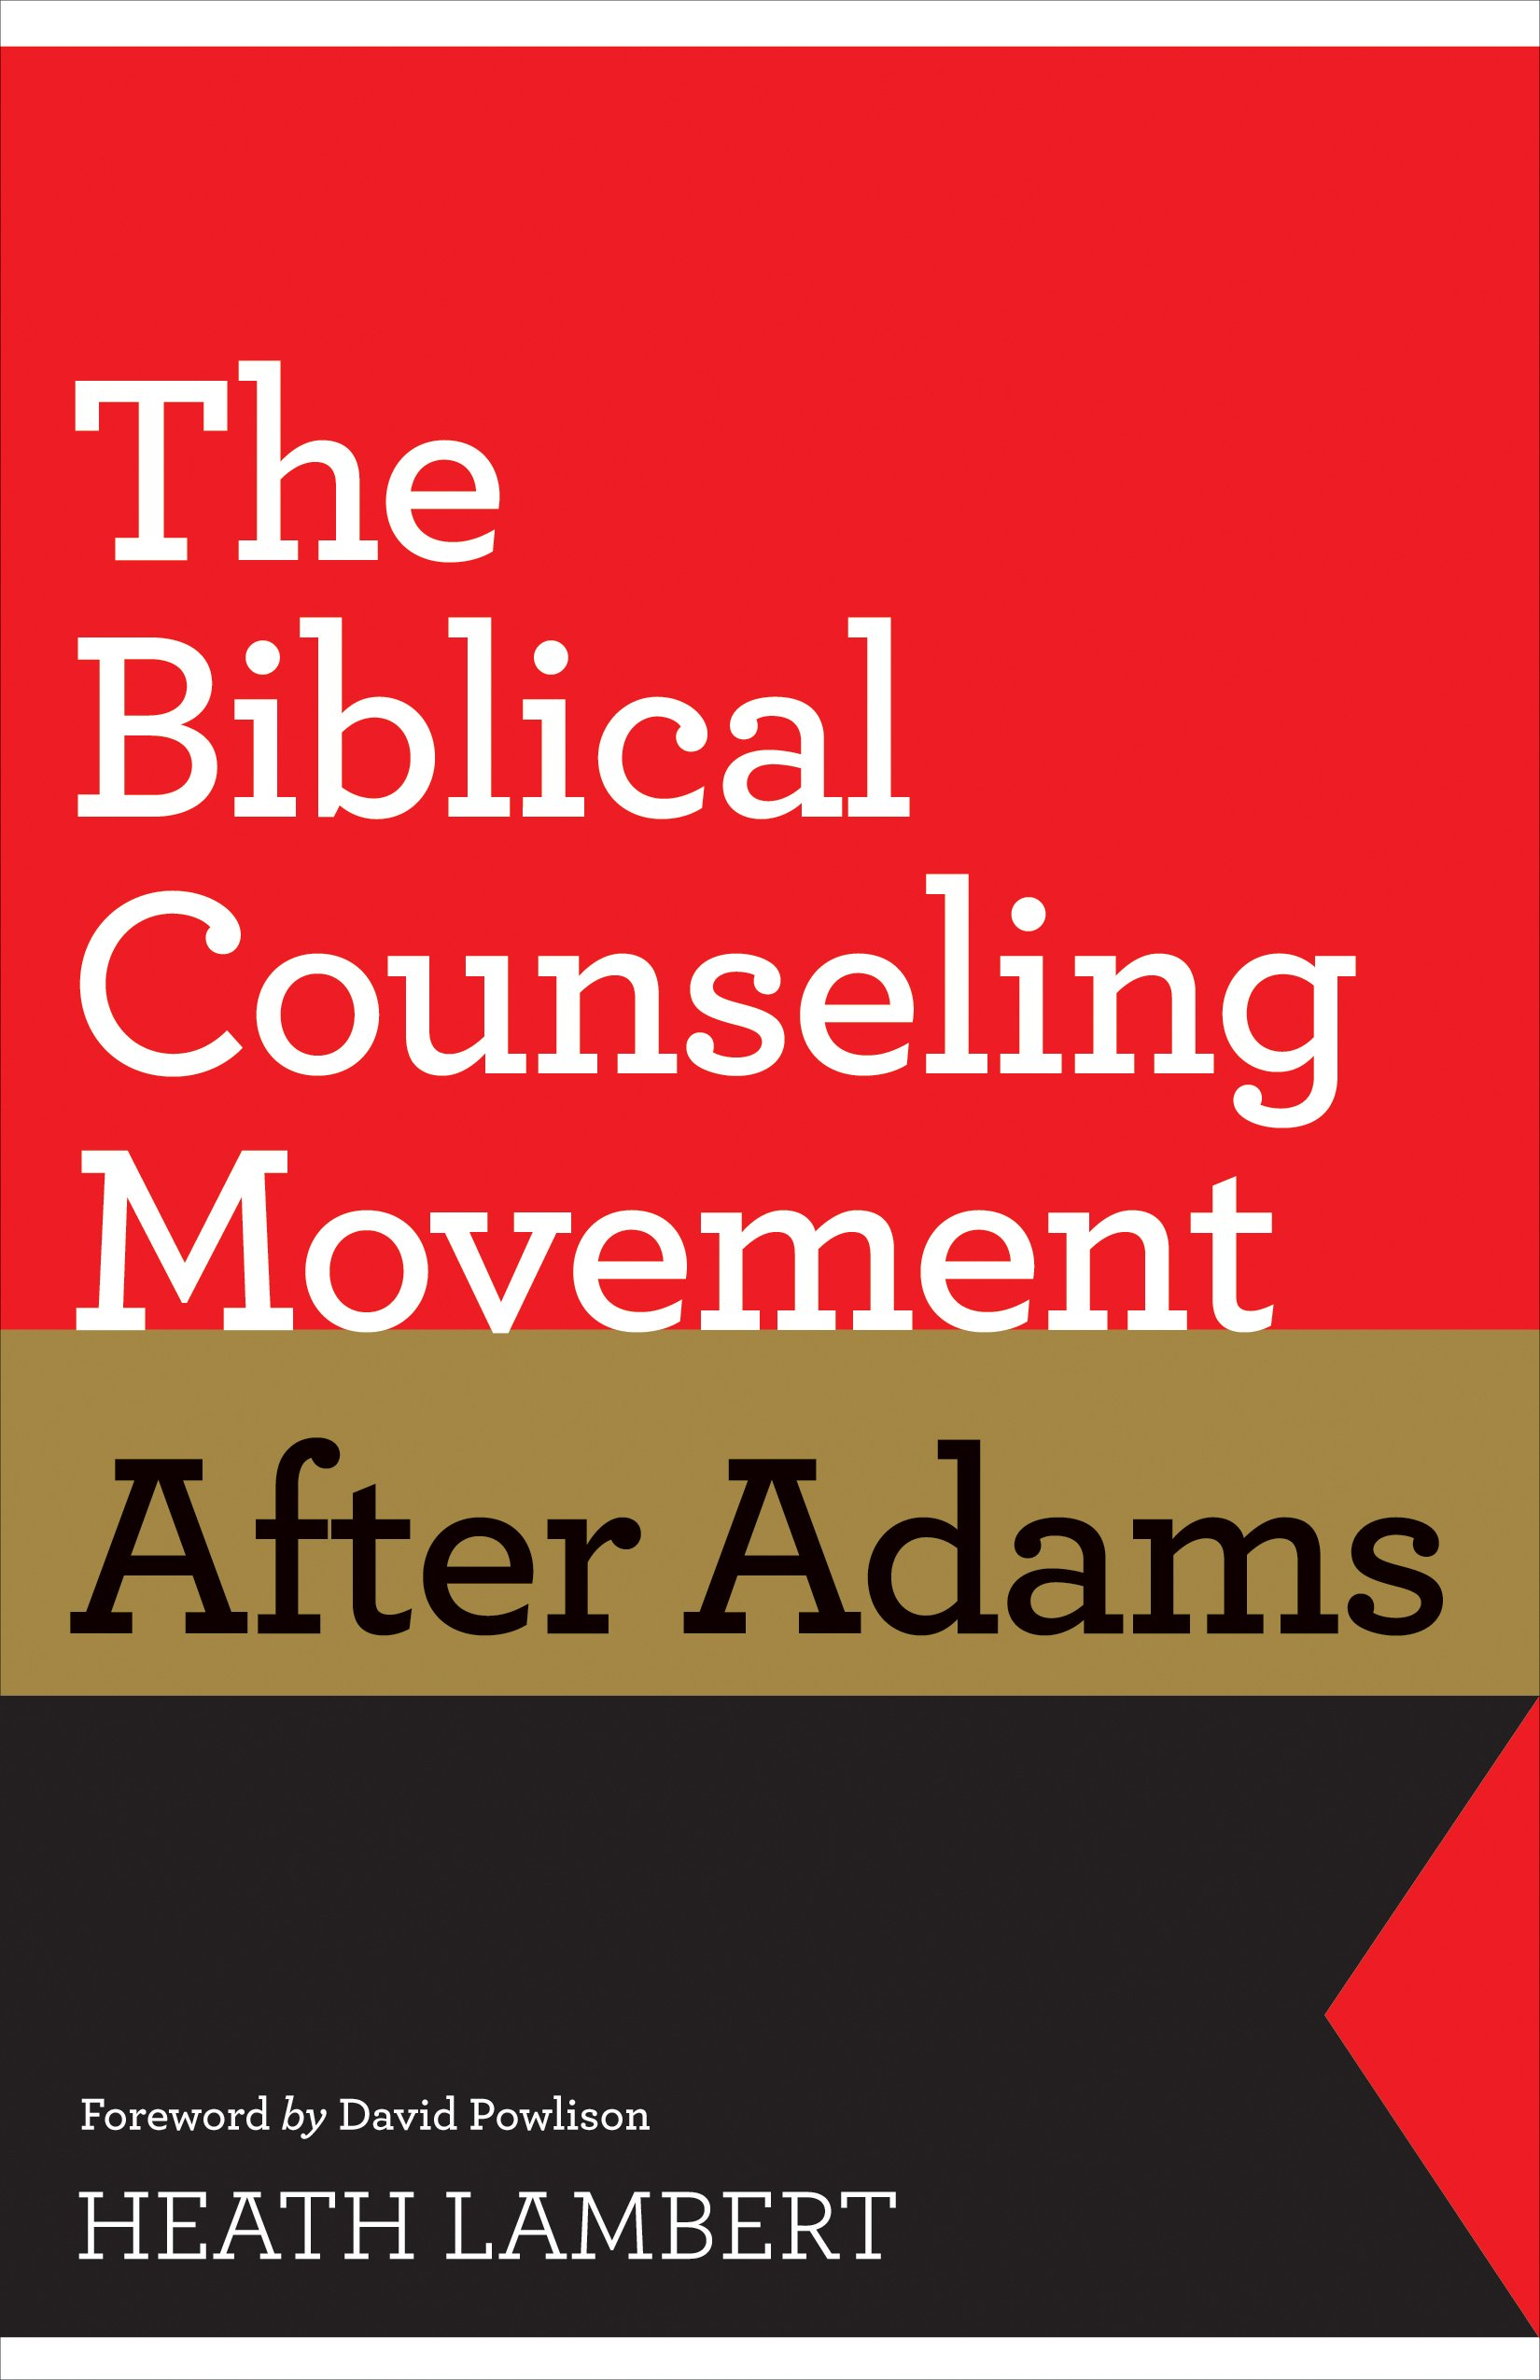 The biblical counseling movement after adams heath lambert david the biblical counseling movement after adams heath lambert david powlison 9781433528132 amazon books fandeluxe Images